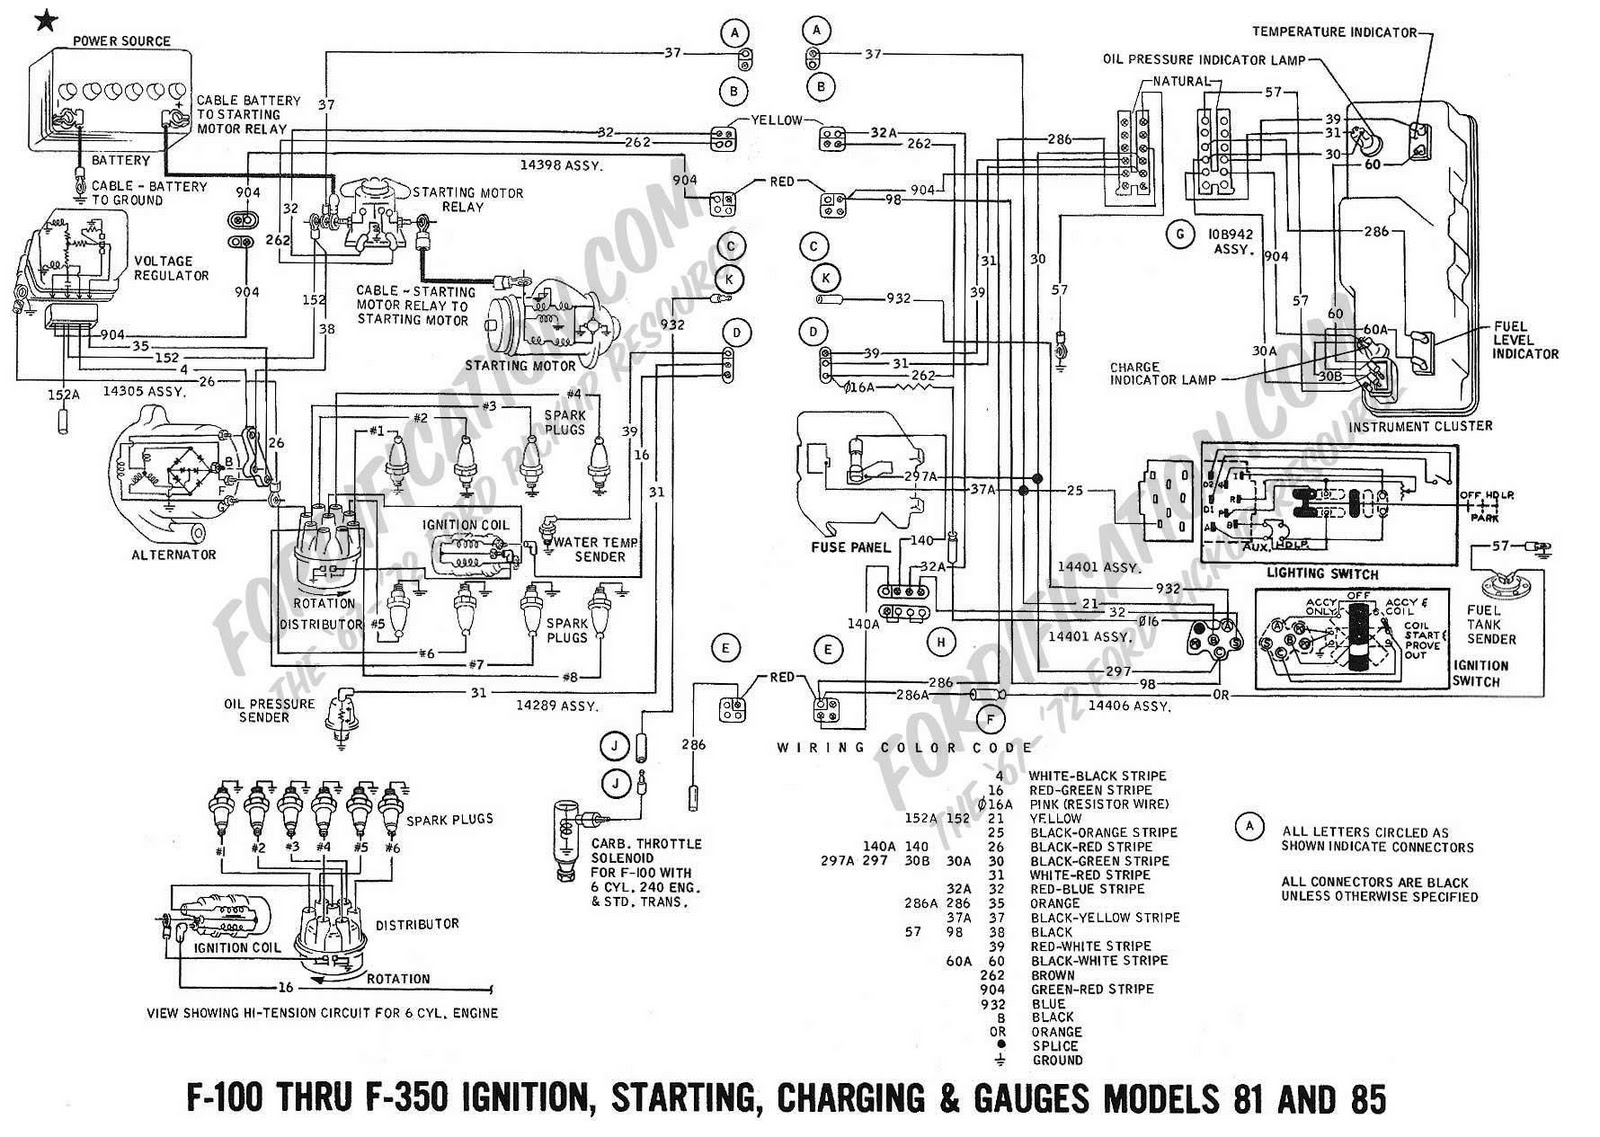 65 ford galaxie wiring diagram schematic blog about wiring diagrams 1970 ford mustang wiring diagram 1966 [ 1600 x 1137 Pixel ]